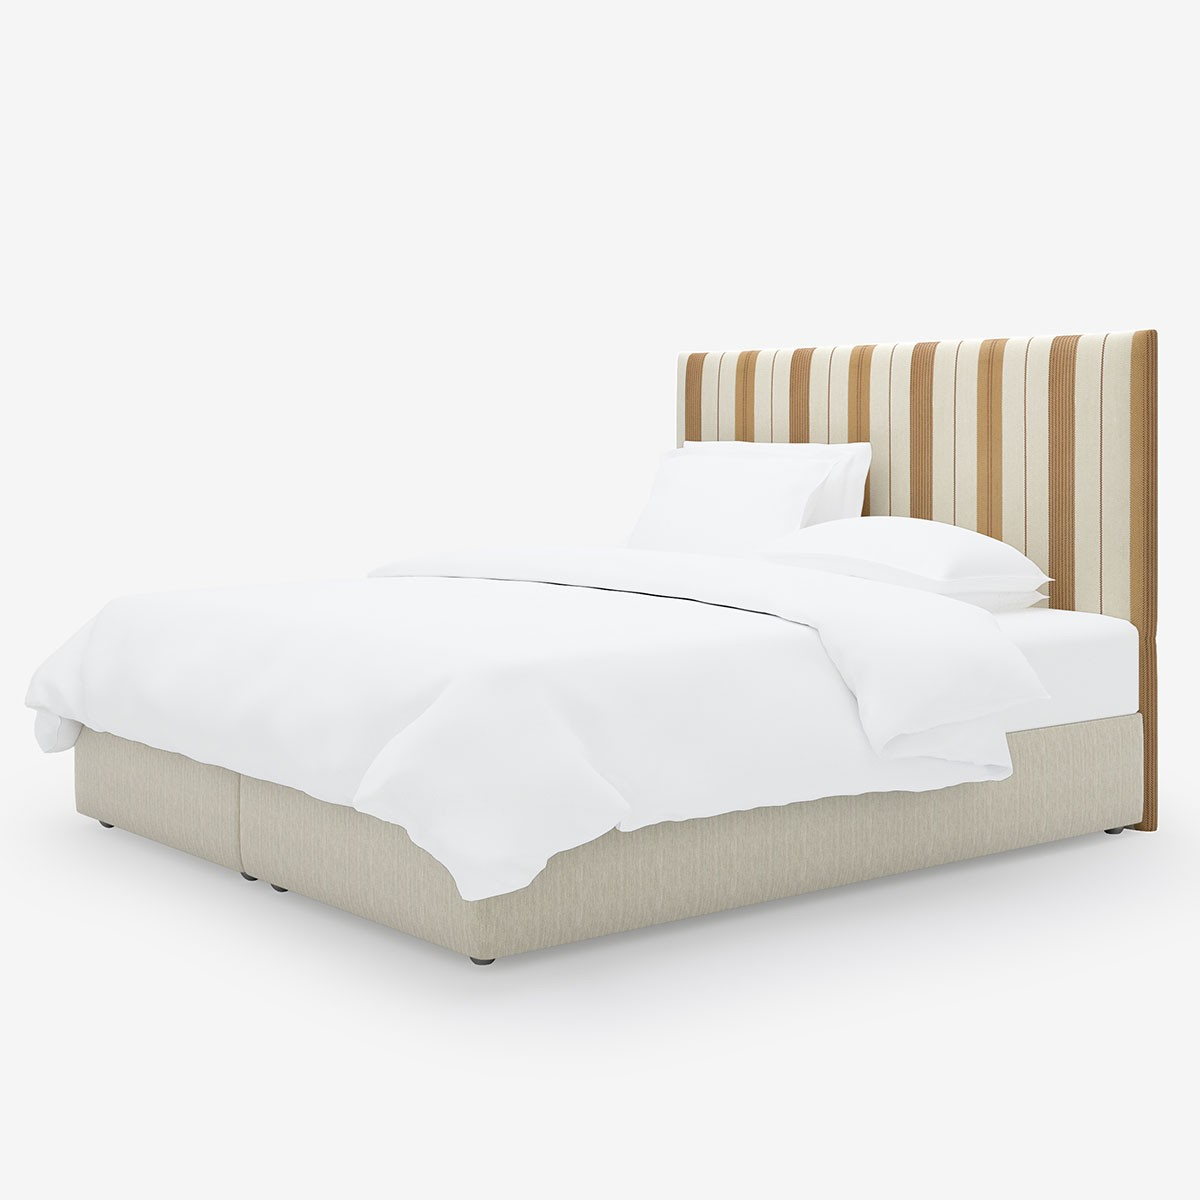 Image shows Simply Striped Super King Headboard in Tan Leather Stripe